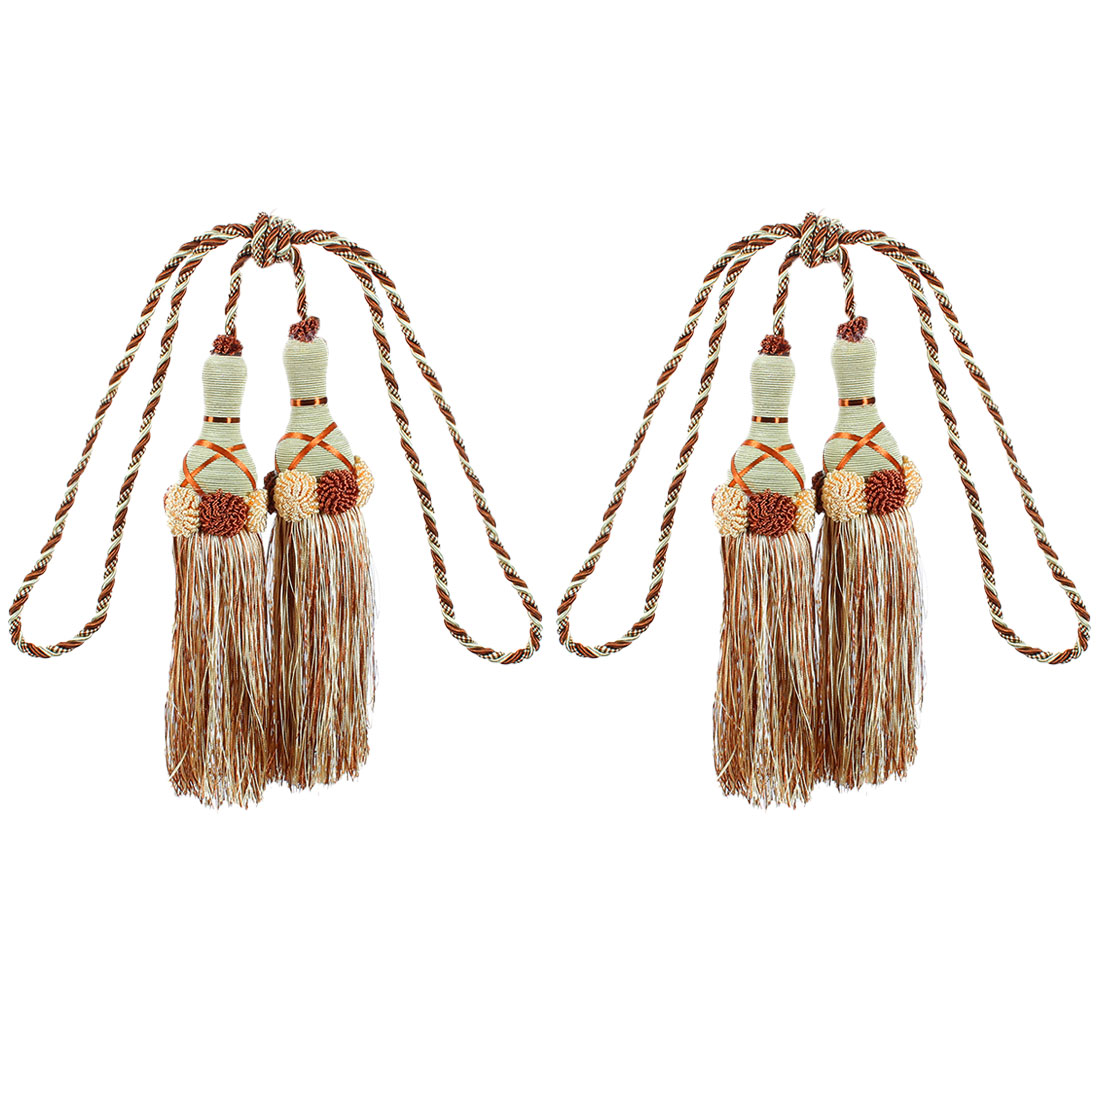 Curtain Flower Detailing Double Tassel Tiebacks 2Pcs